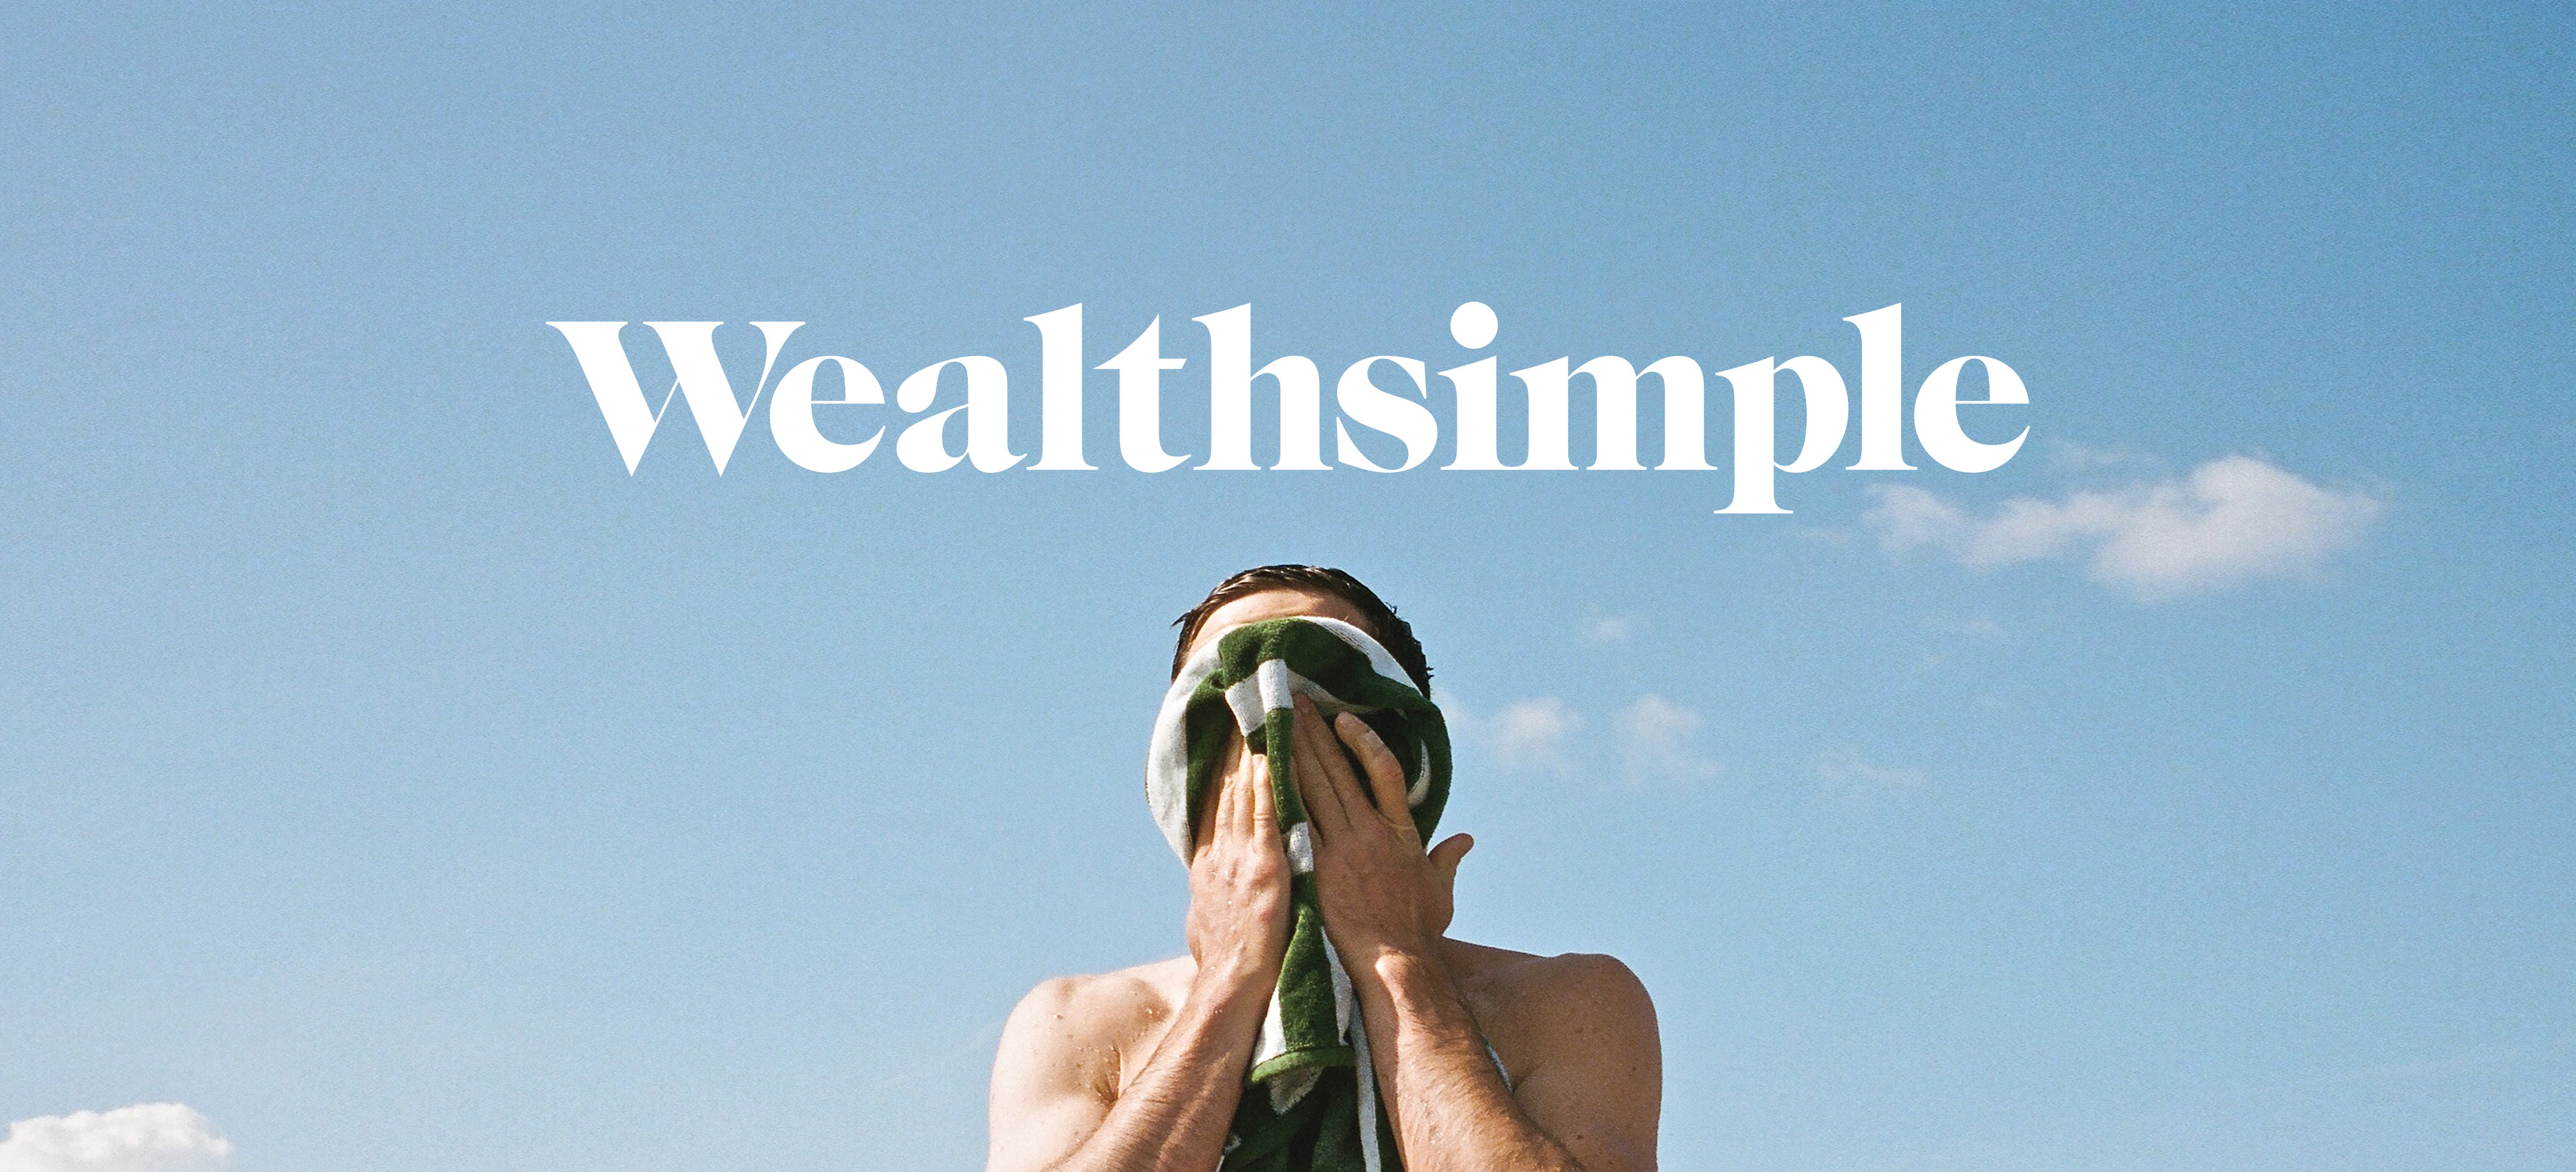 Wealthsimple Stock Market Investing Review 2019